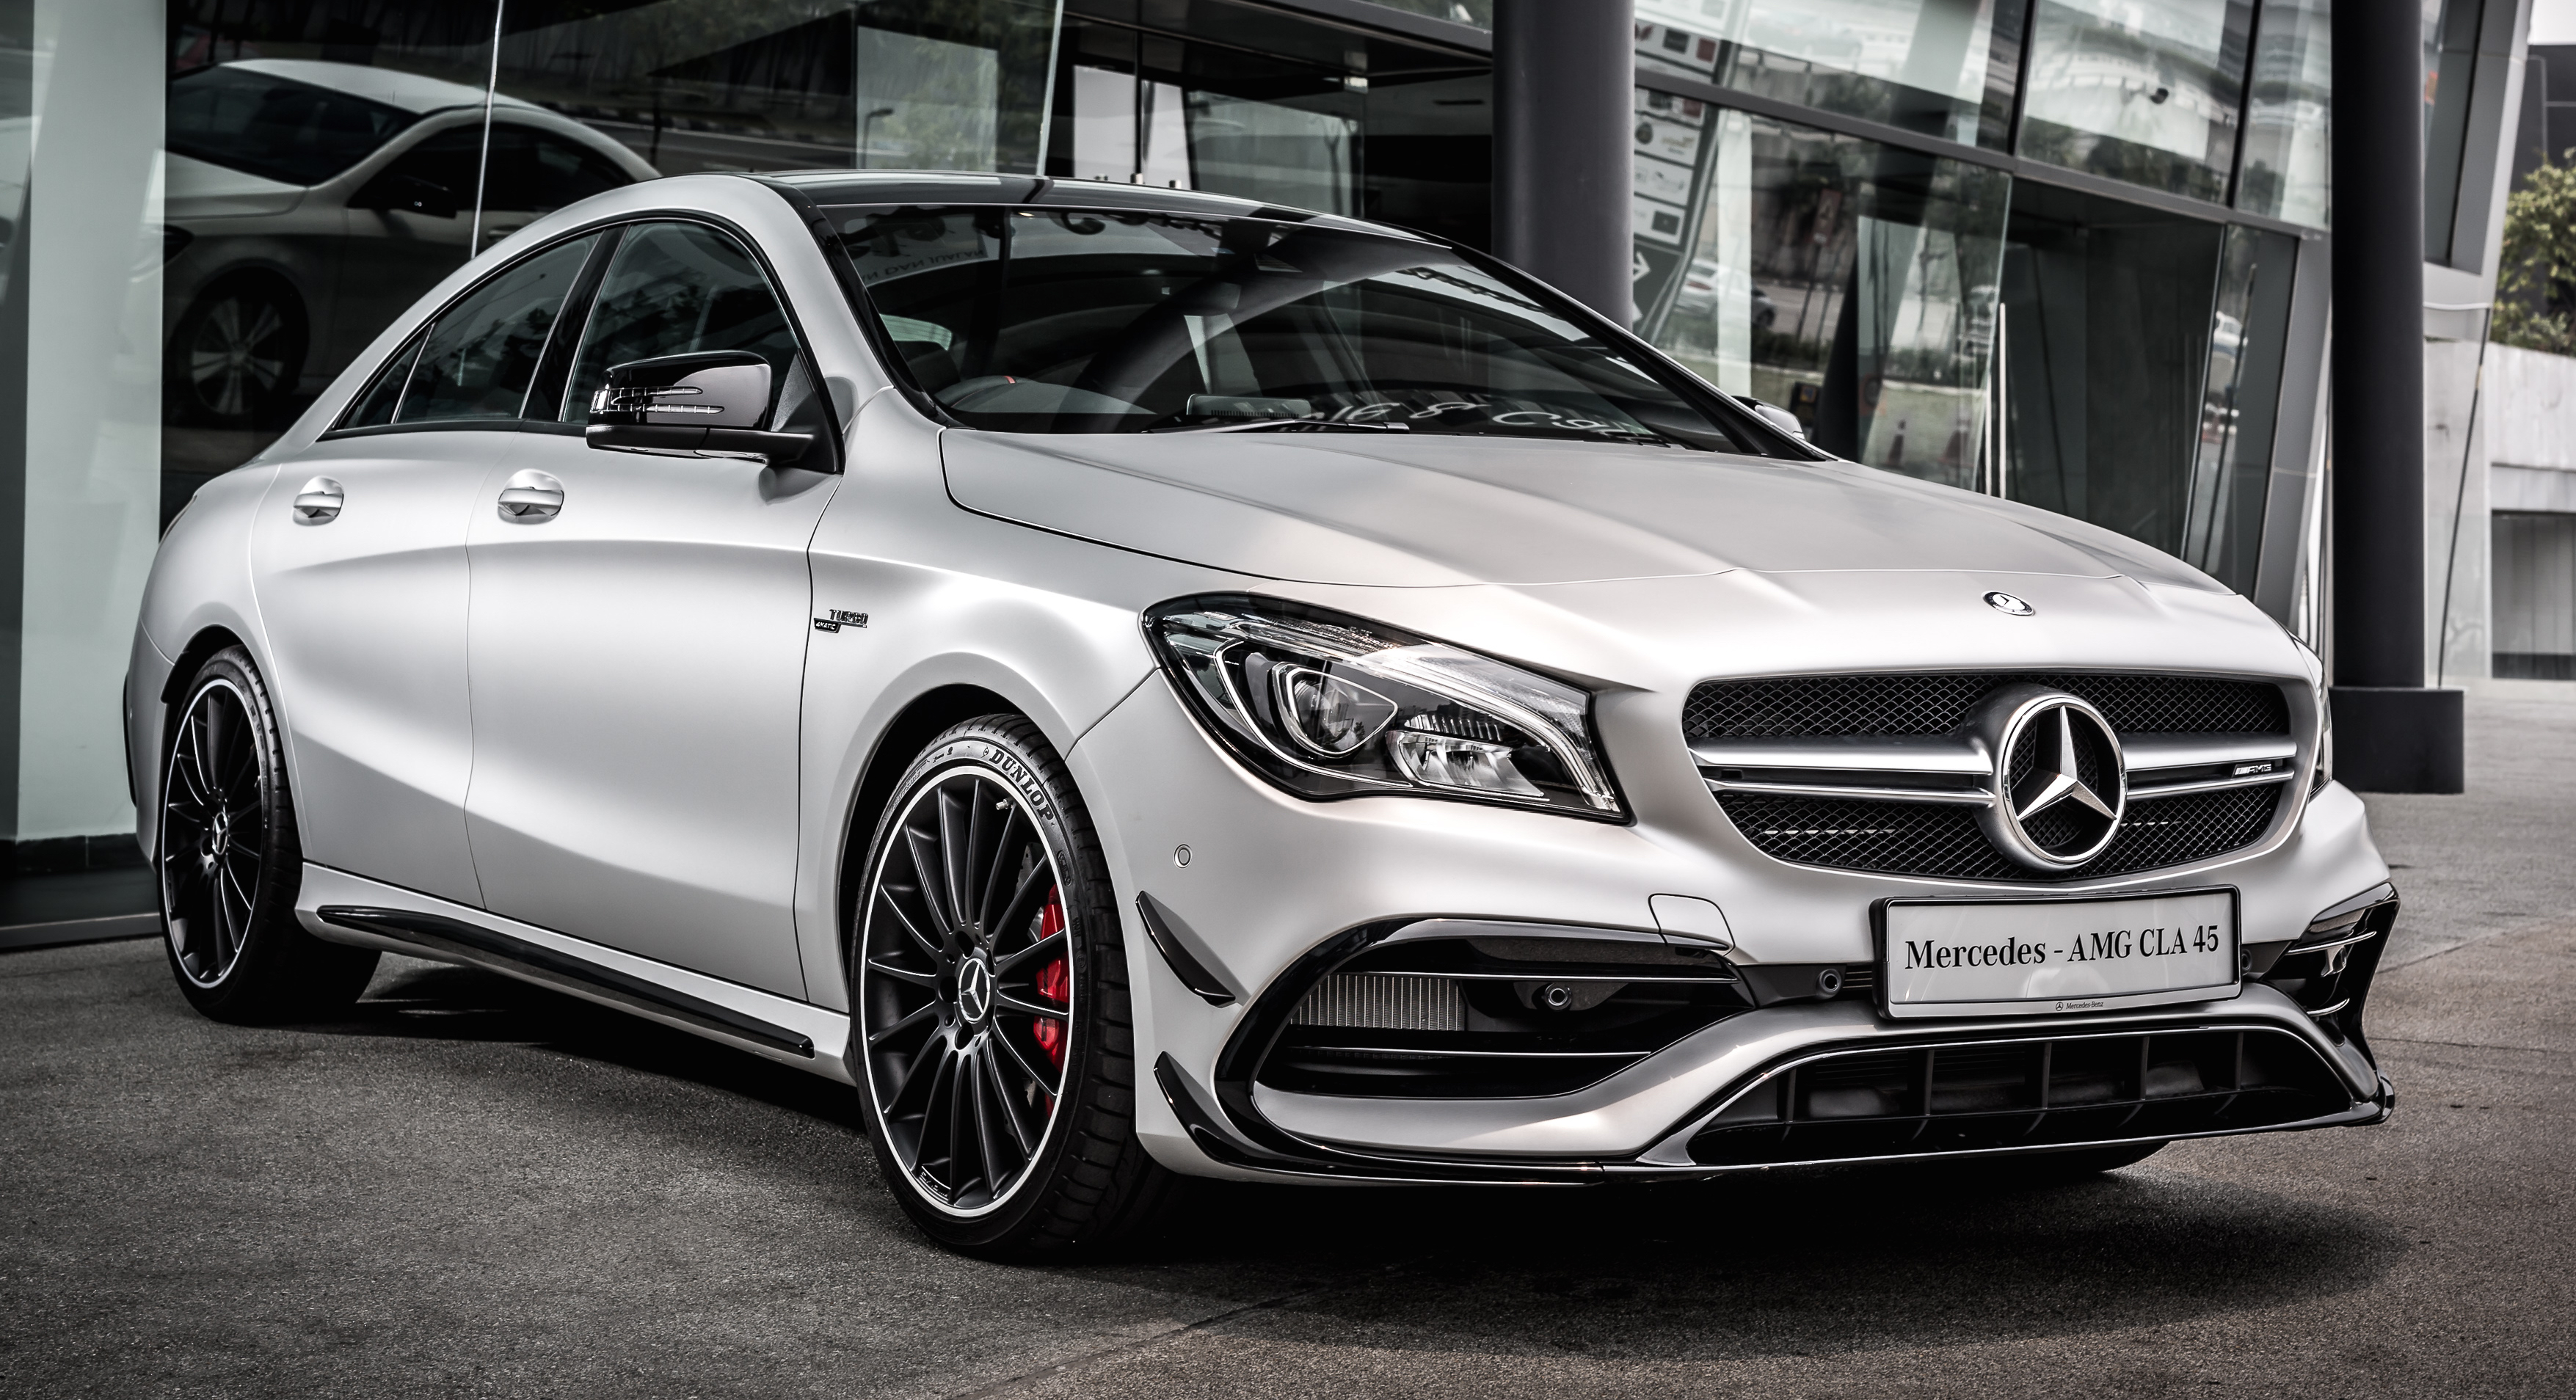 Permalink to 2012 Mercedes Cla 250